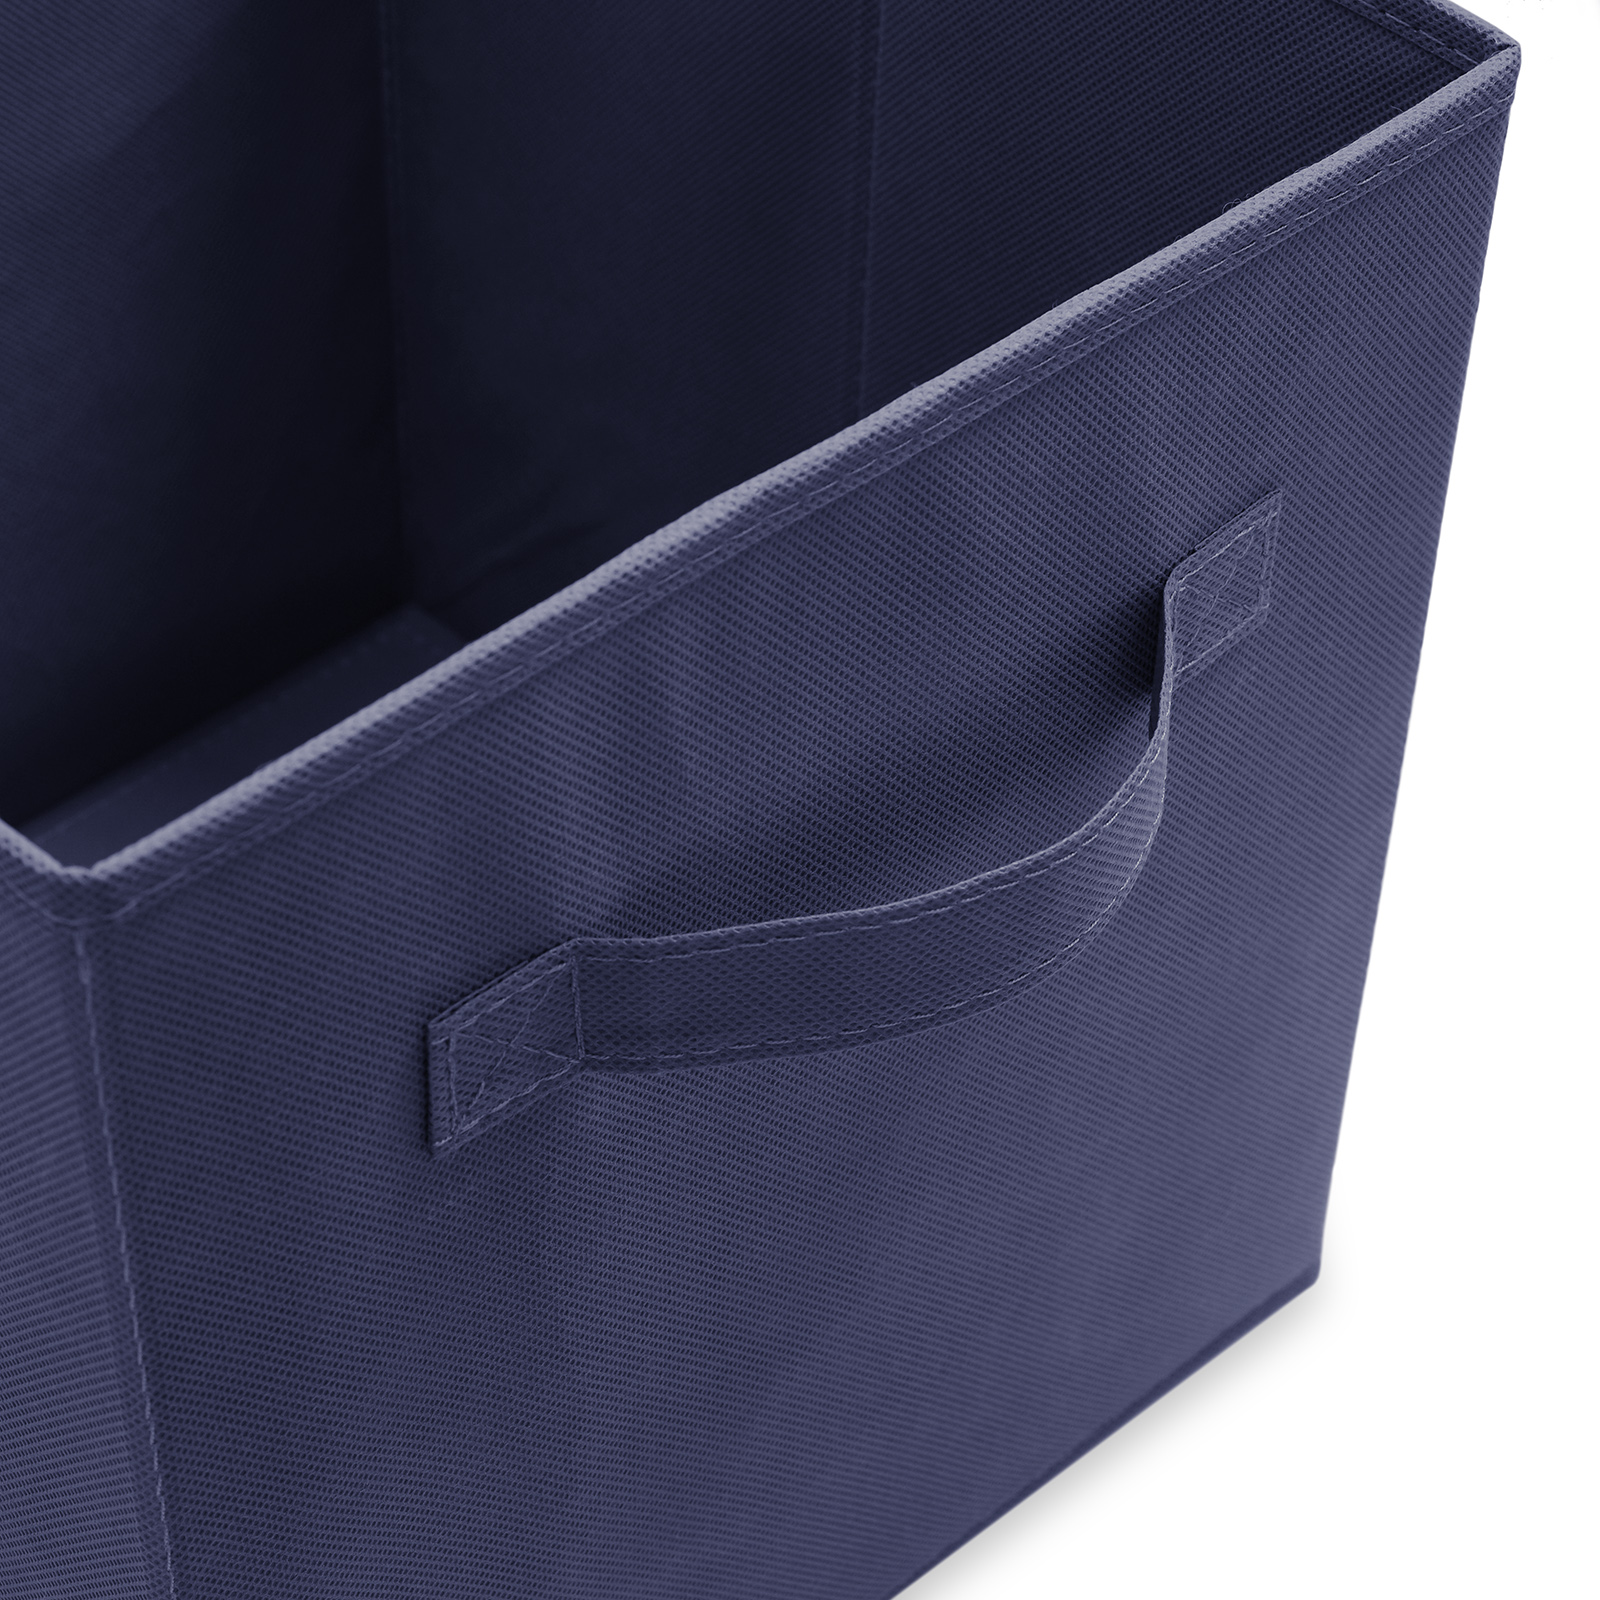 6-Collapsible-Foldable-Cloth-Fabric-Cubby-Cube-Storage-Bins-Baskets-for-Shelves thumbnail 55